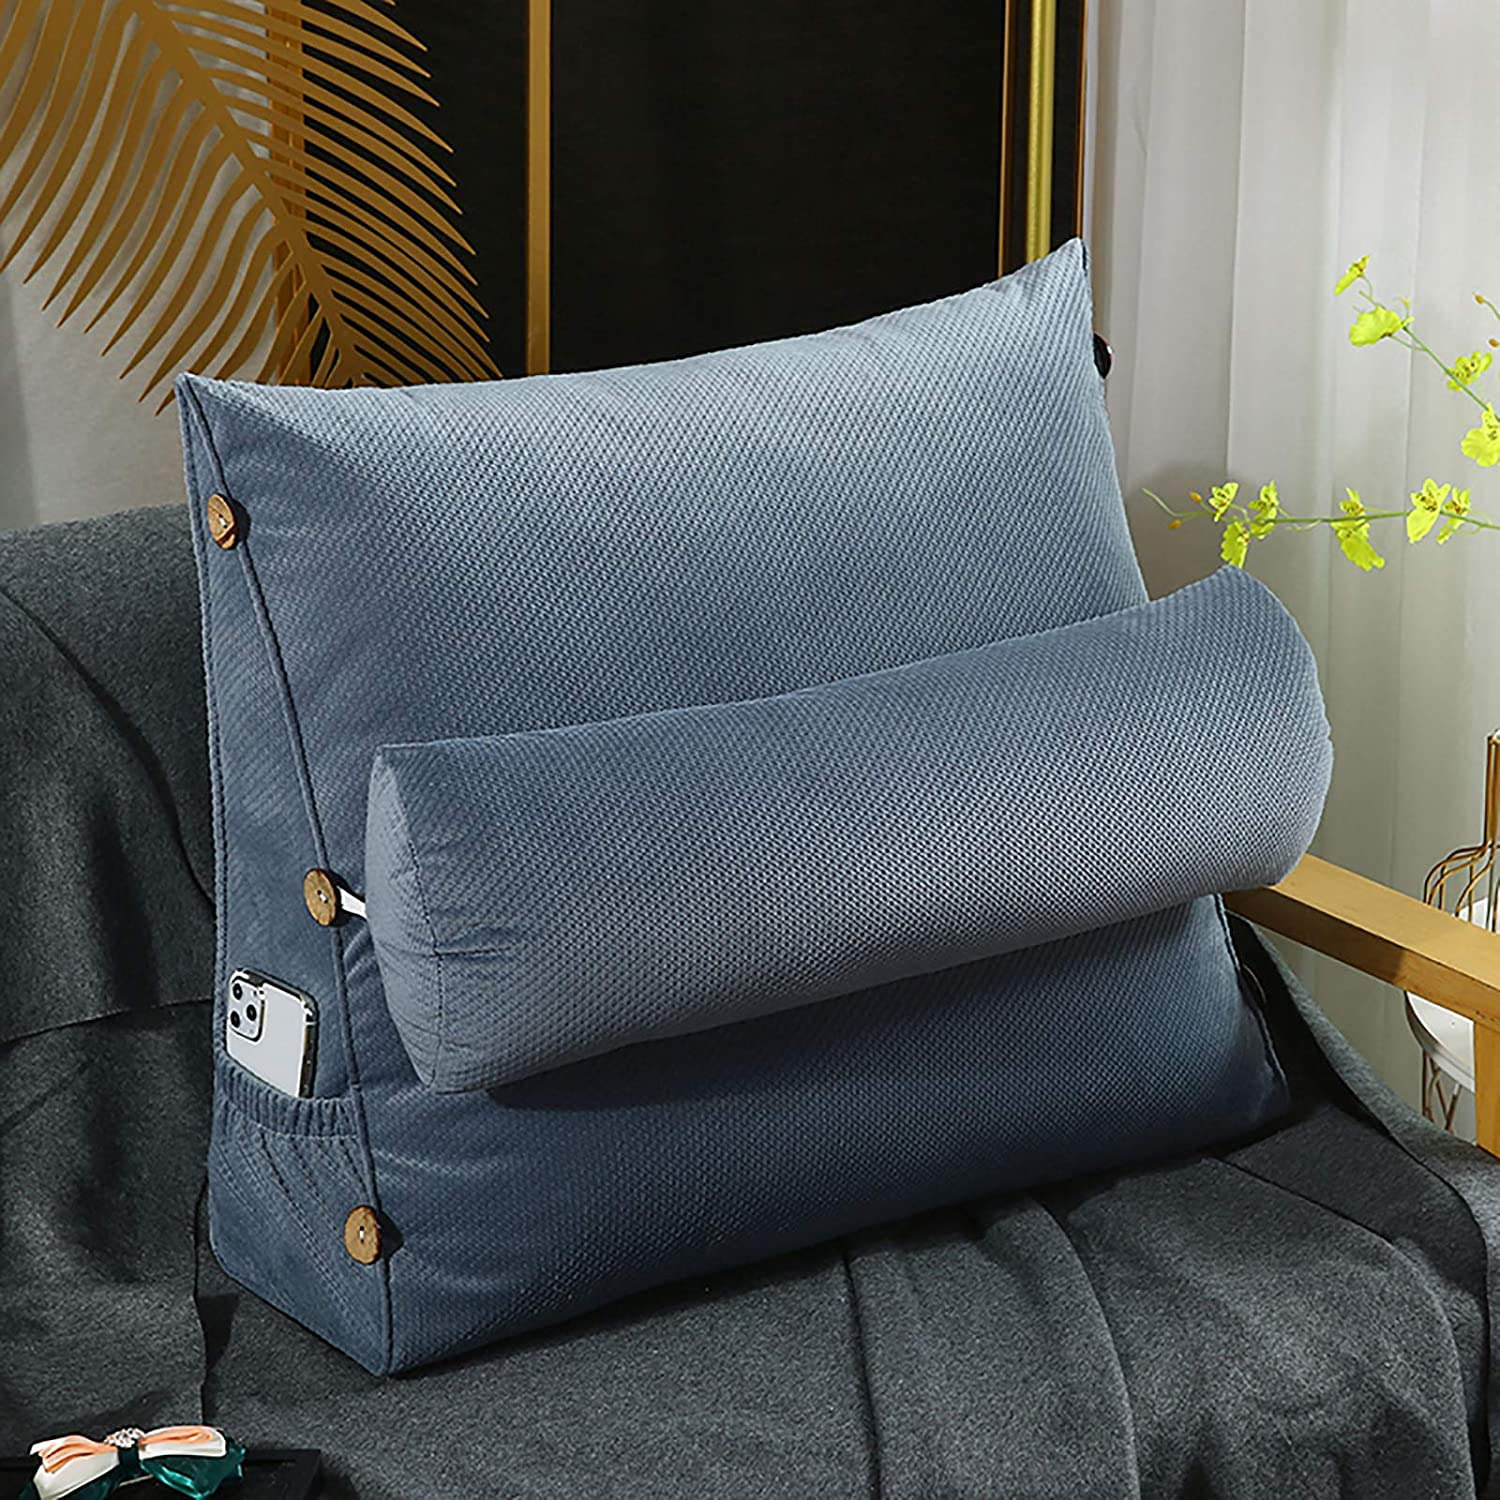 Bed Rest Reading Pillow Triangular Courier shipping free shipping Pockets Backrest OFFer with Detach